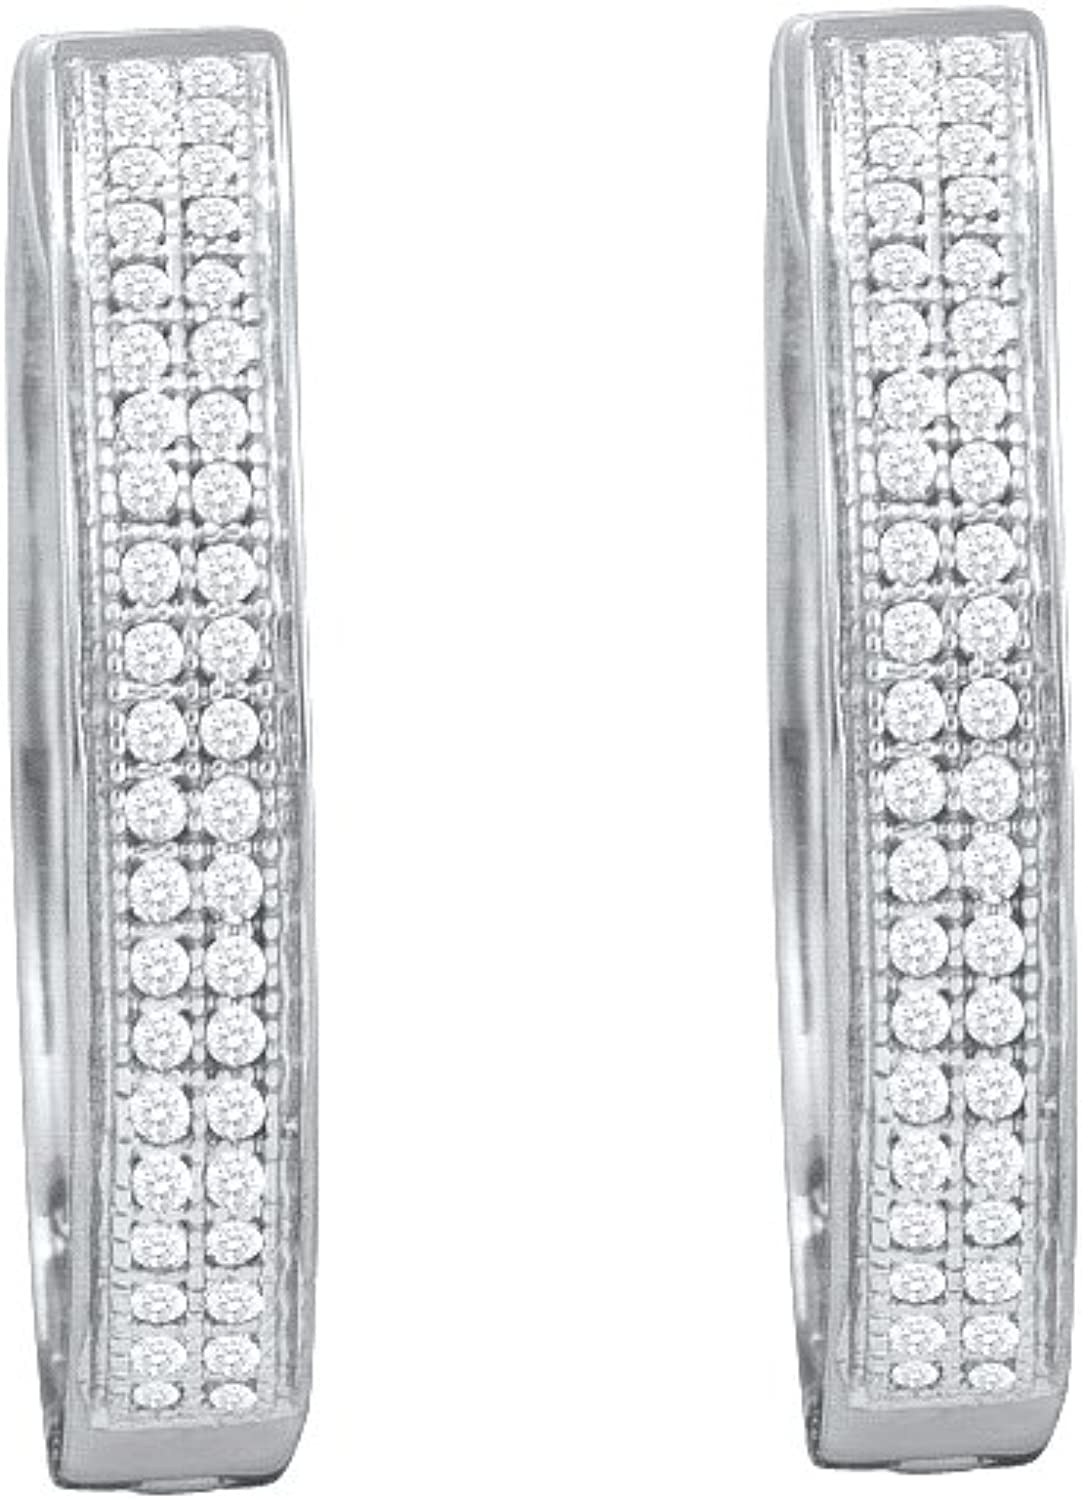 1 4 Total Carat Weight DIAMOND MICRO PAVE HOOPS